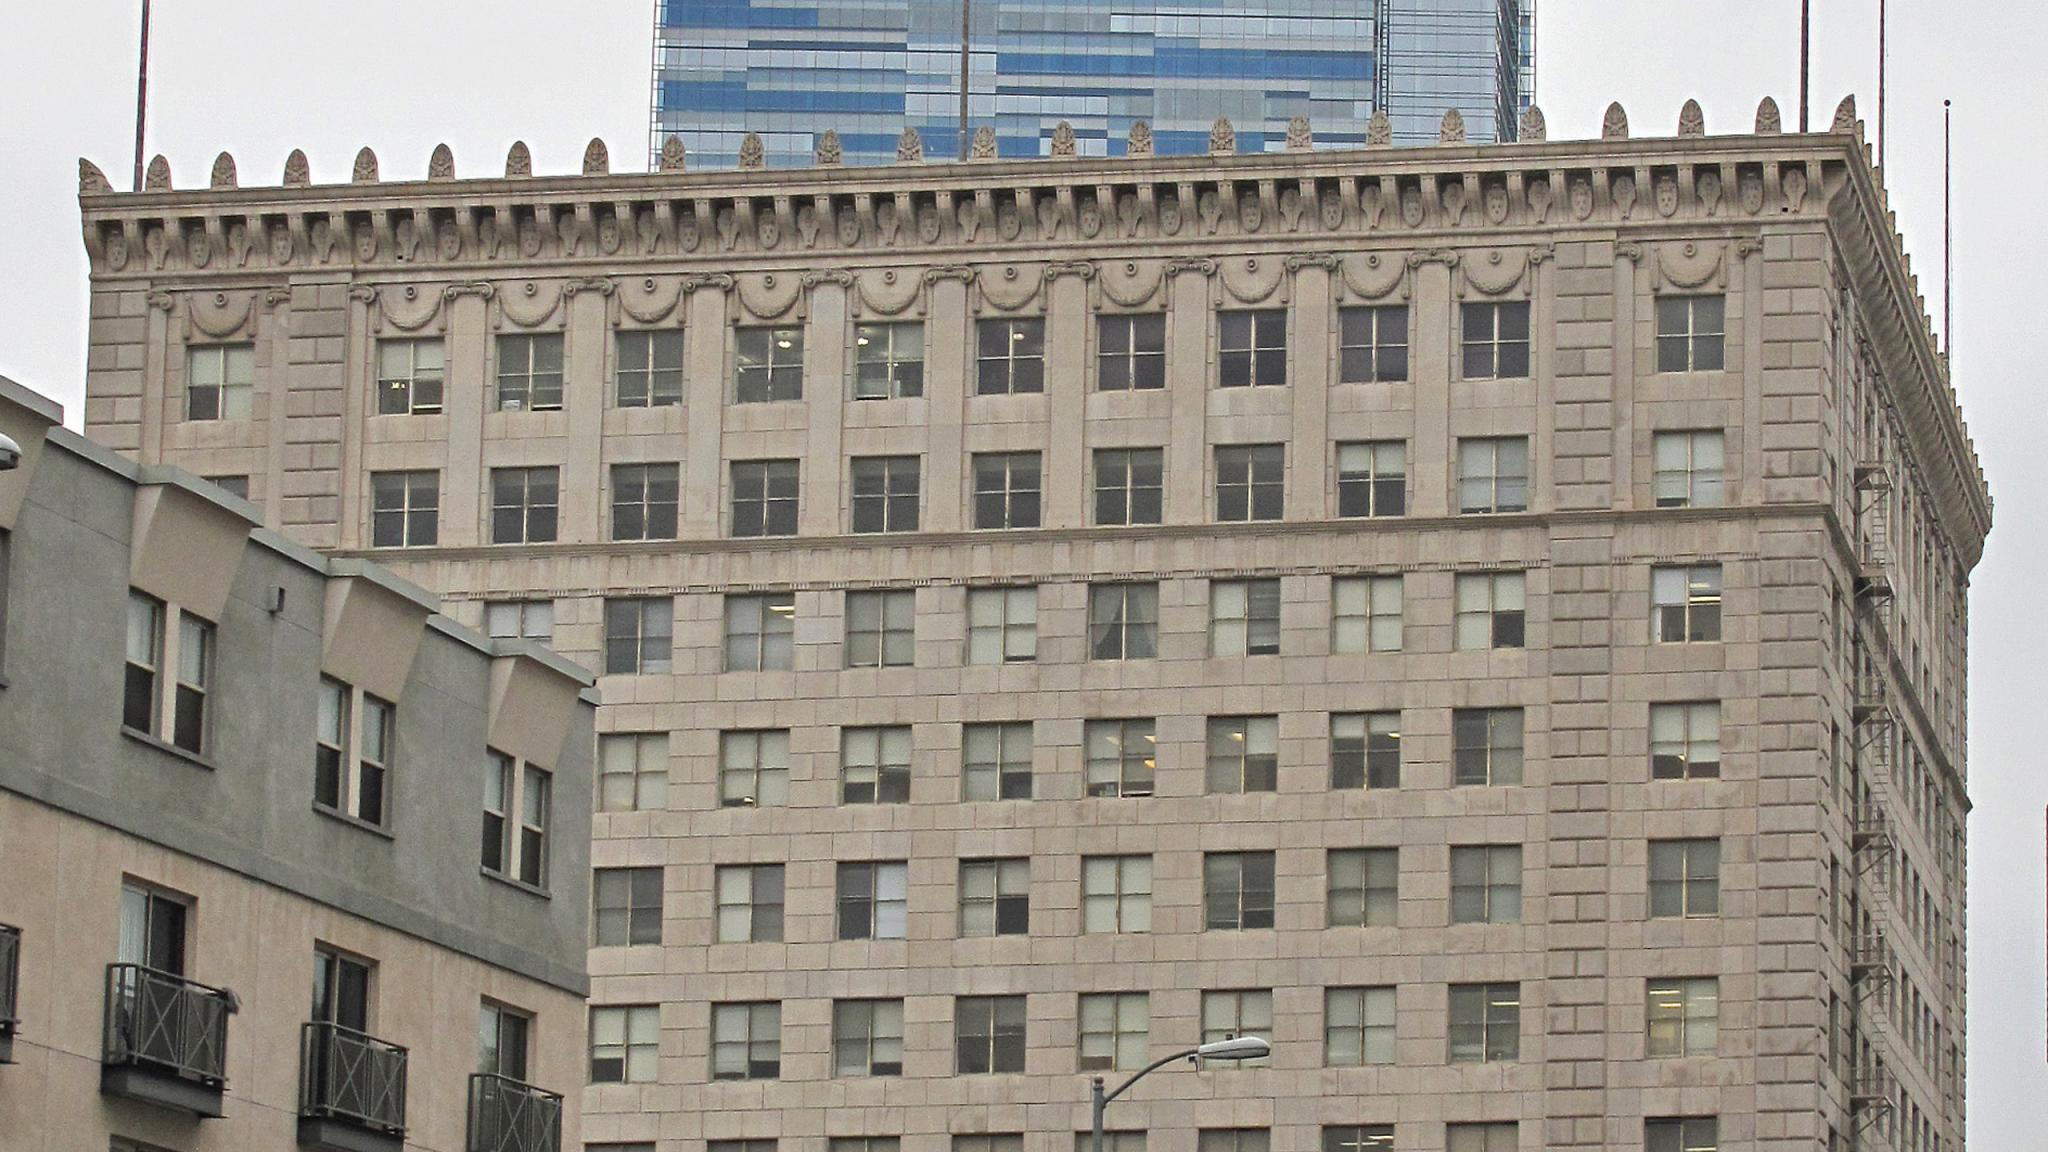 Petroleum Building  Los Angeles   United States  USA Pictures HD Wallpaper